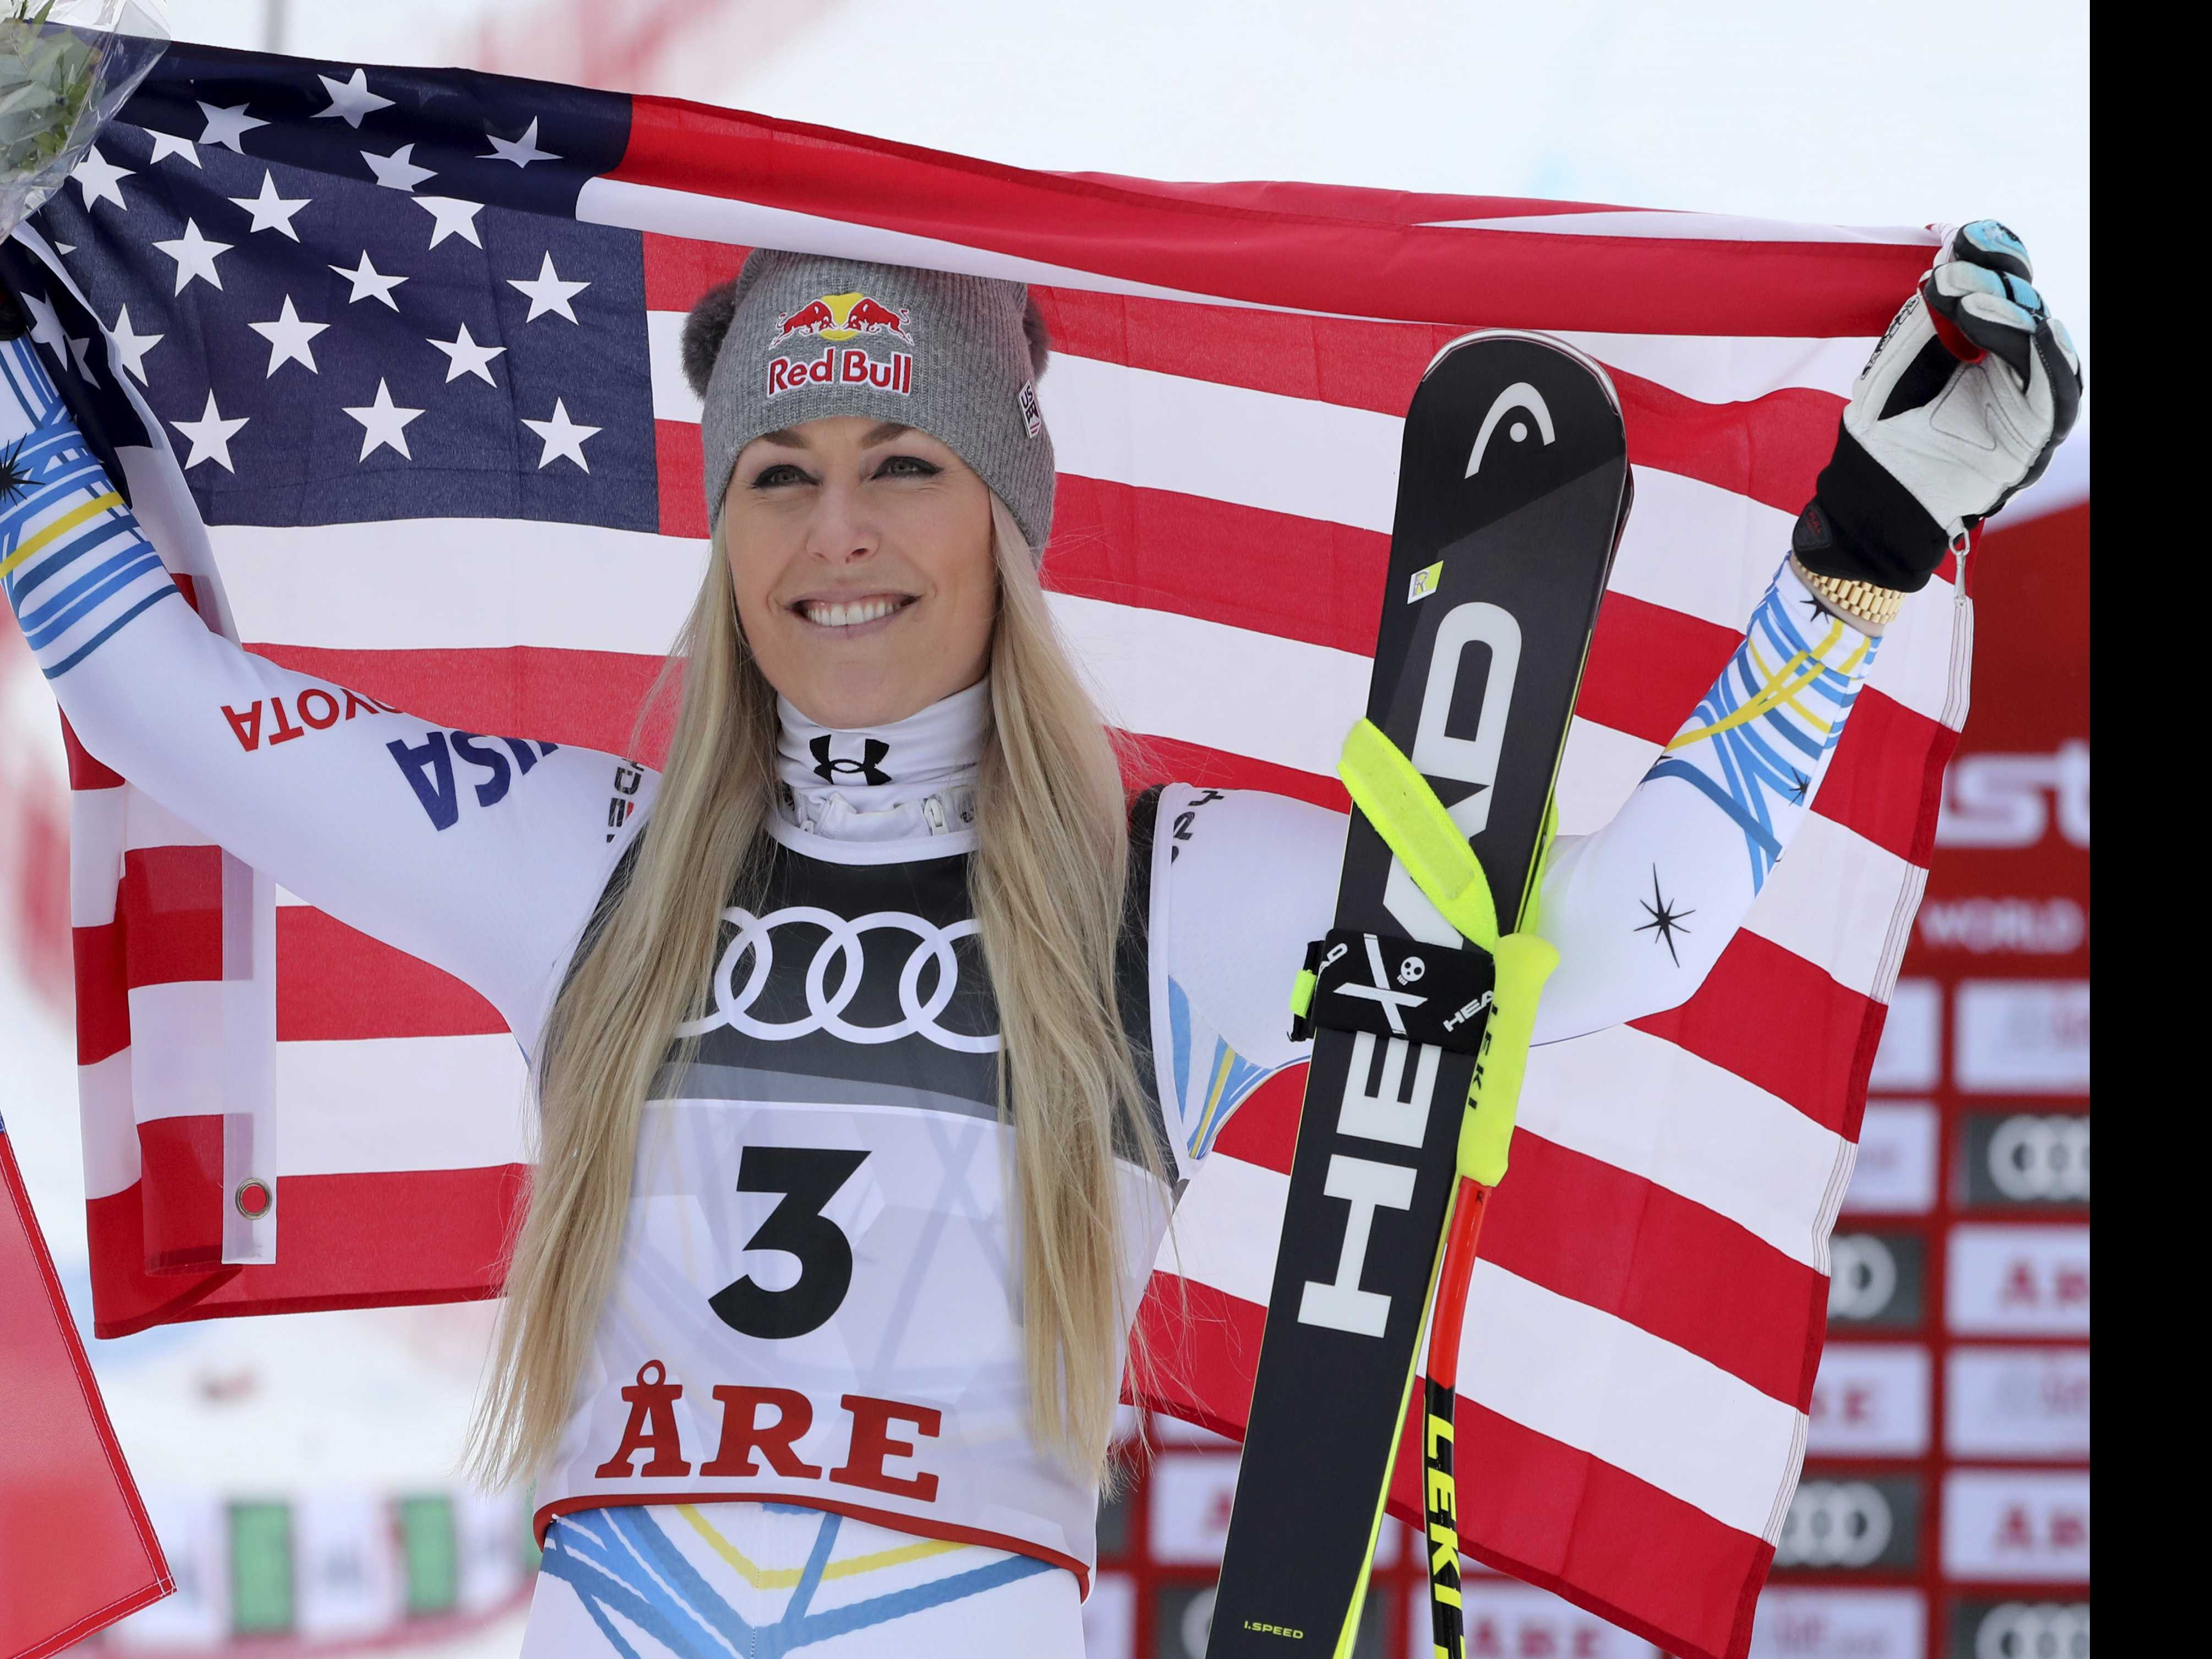 Vonn Wins Bronze Medal In the Final Race of her Career